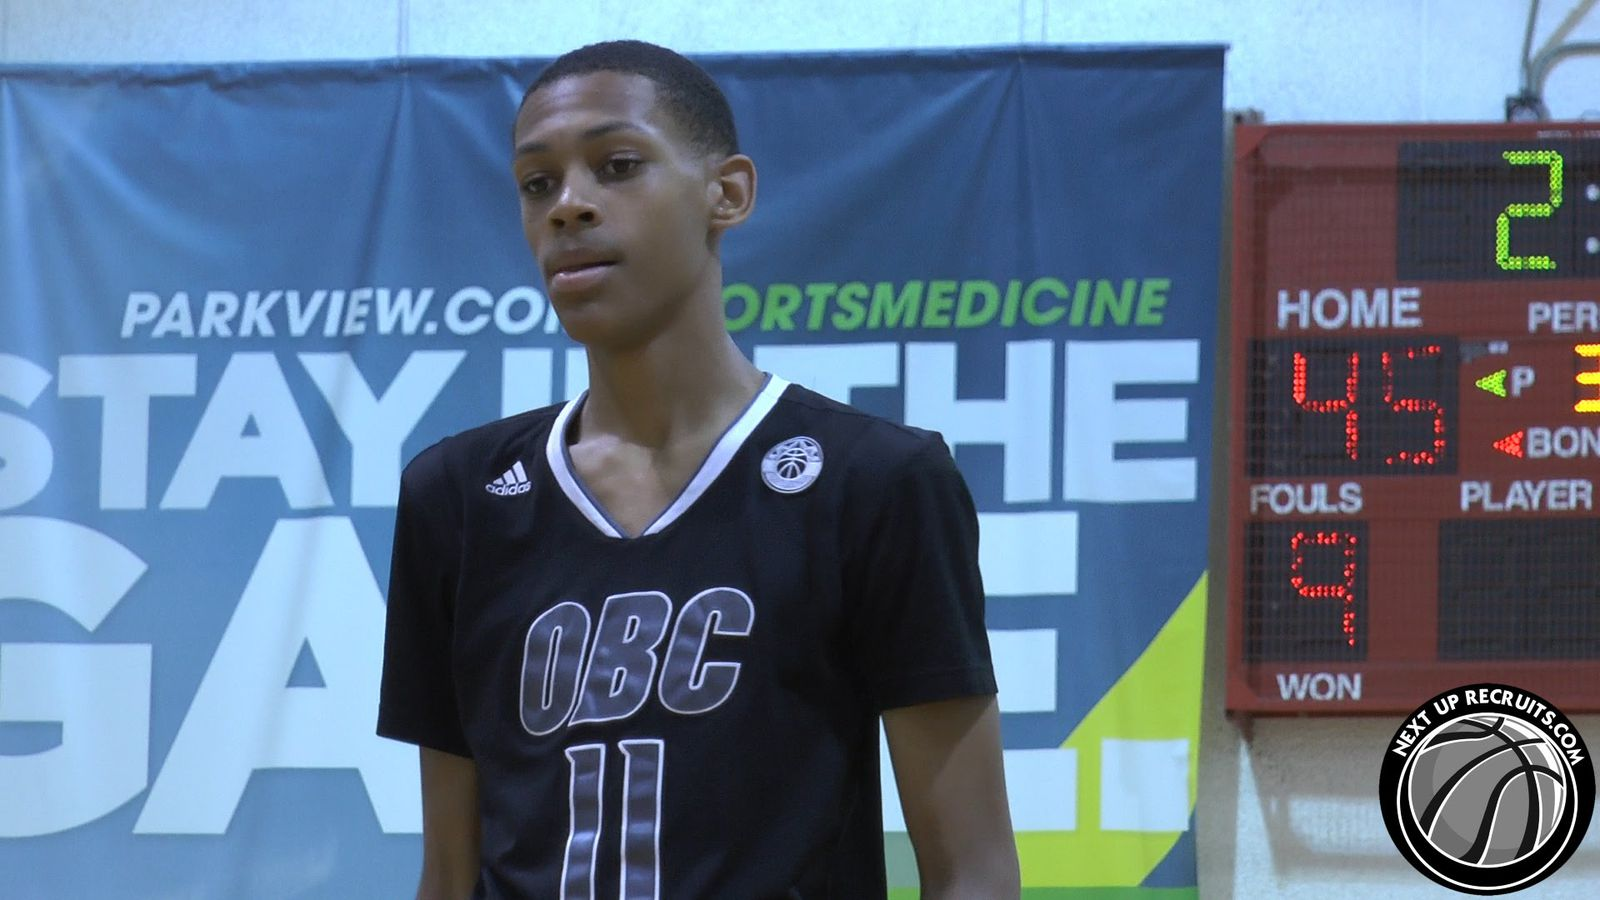 Former Ohio State commit Darius Bazley showing interest in ...